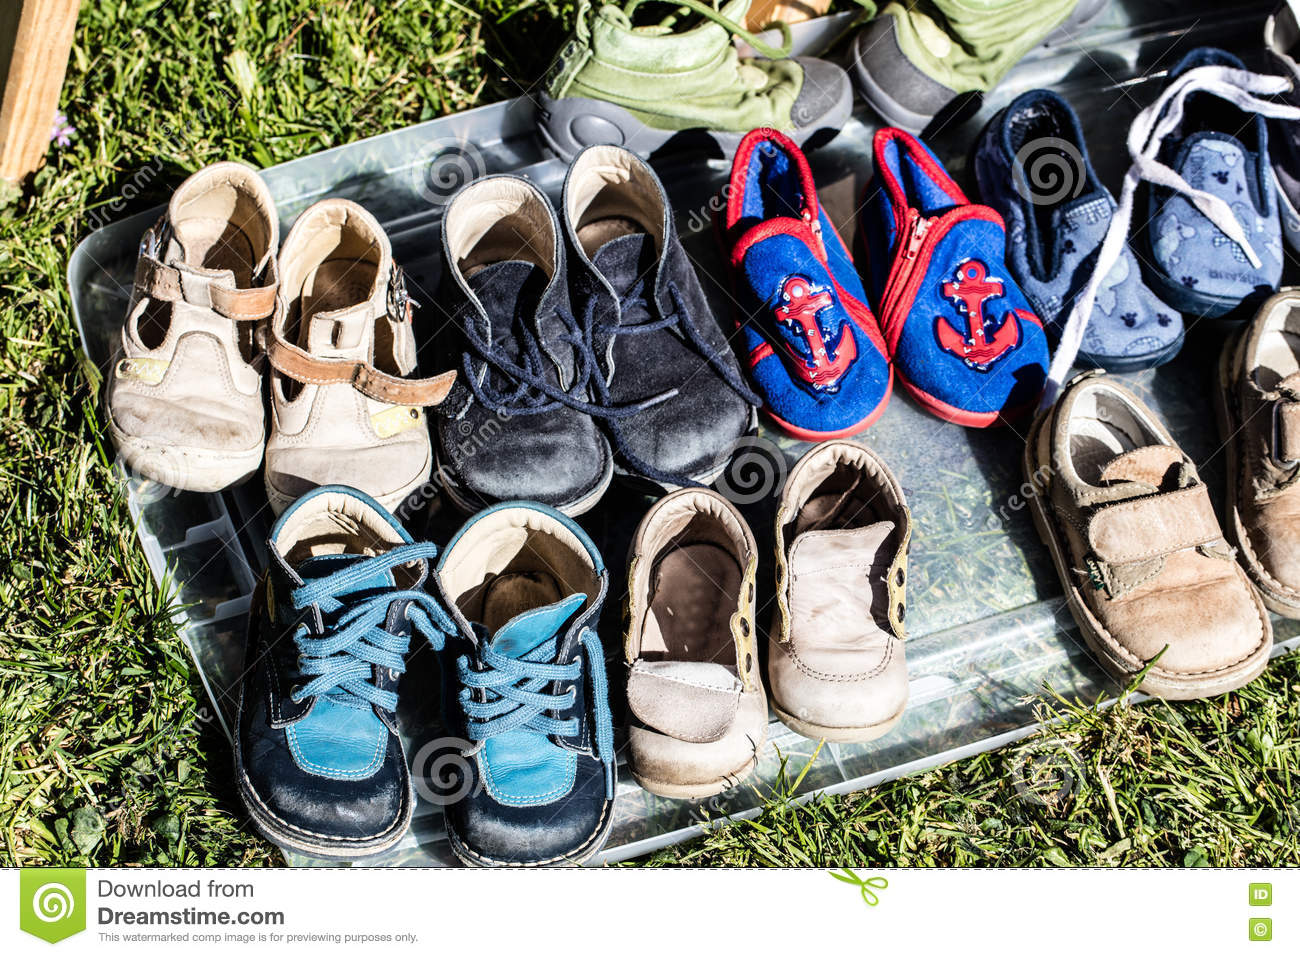 second hand baby and child shoes for reusing or recycling